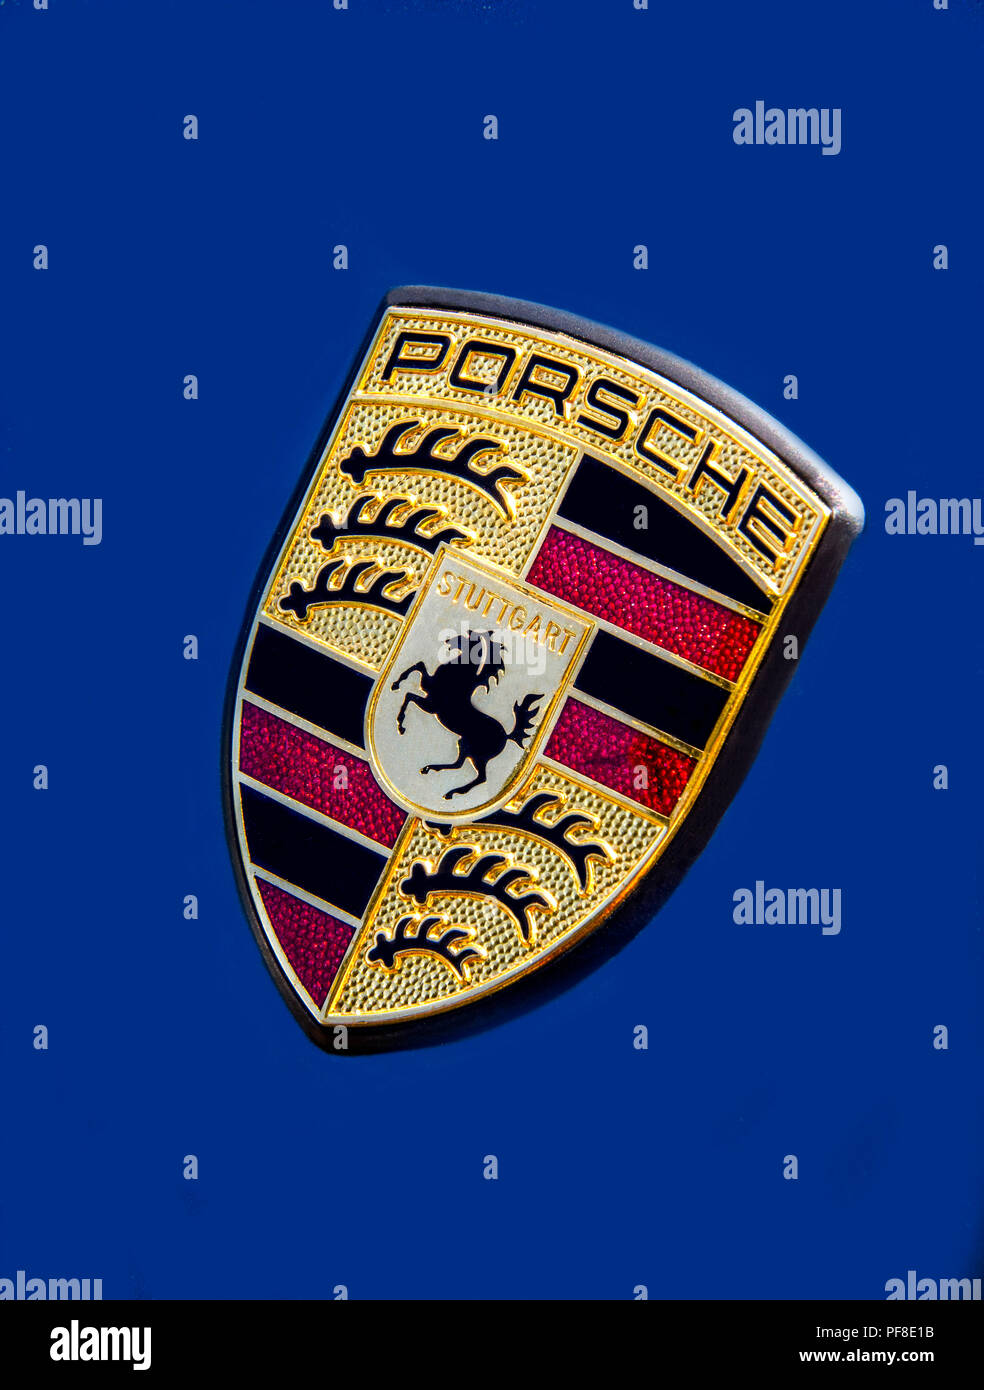 Porsche sign on the hood - Stock Image